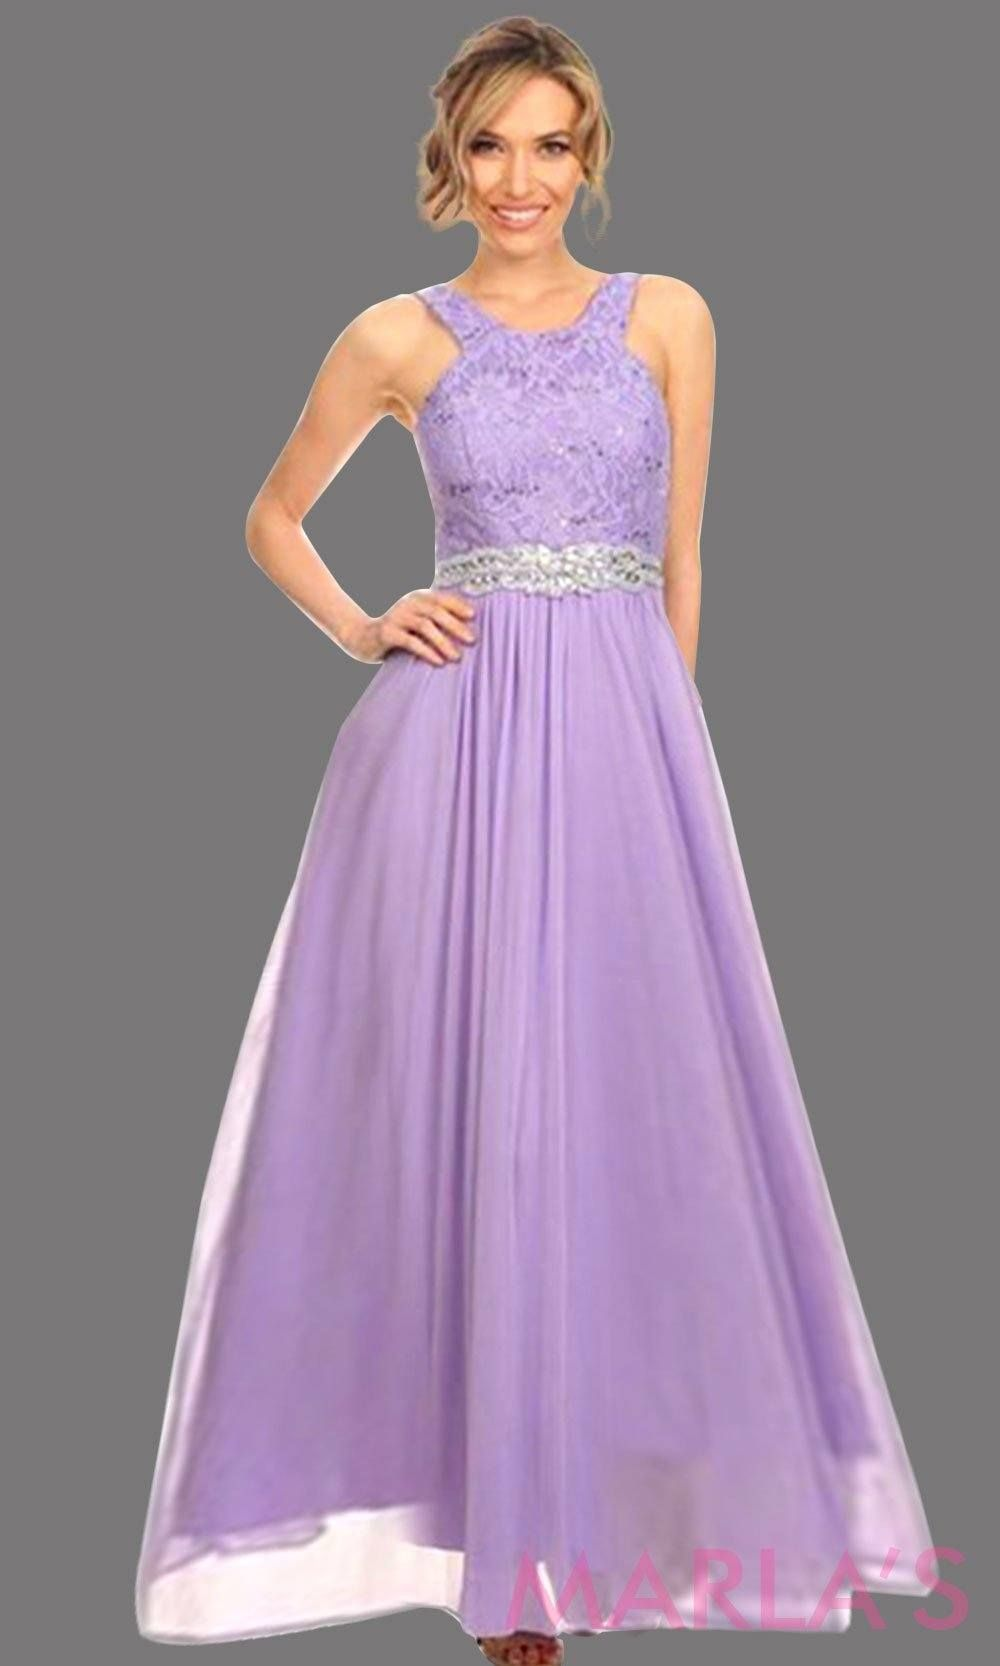 Long High Neck Light Purple Flowy Party Dress The High Neck Is Lace And Flows Into A Chiffon Skirt T Lilac Prom Dresses Prom Dresses Lilac Bridesmaid Dresses [ 1666 x 1000 Pixel ]